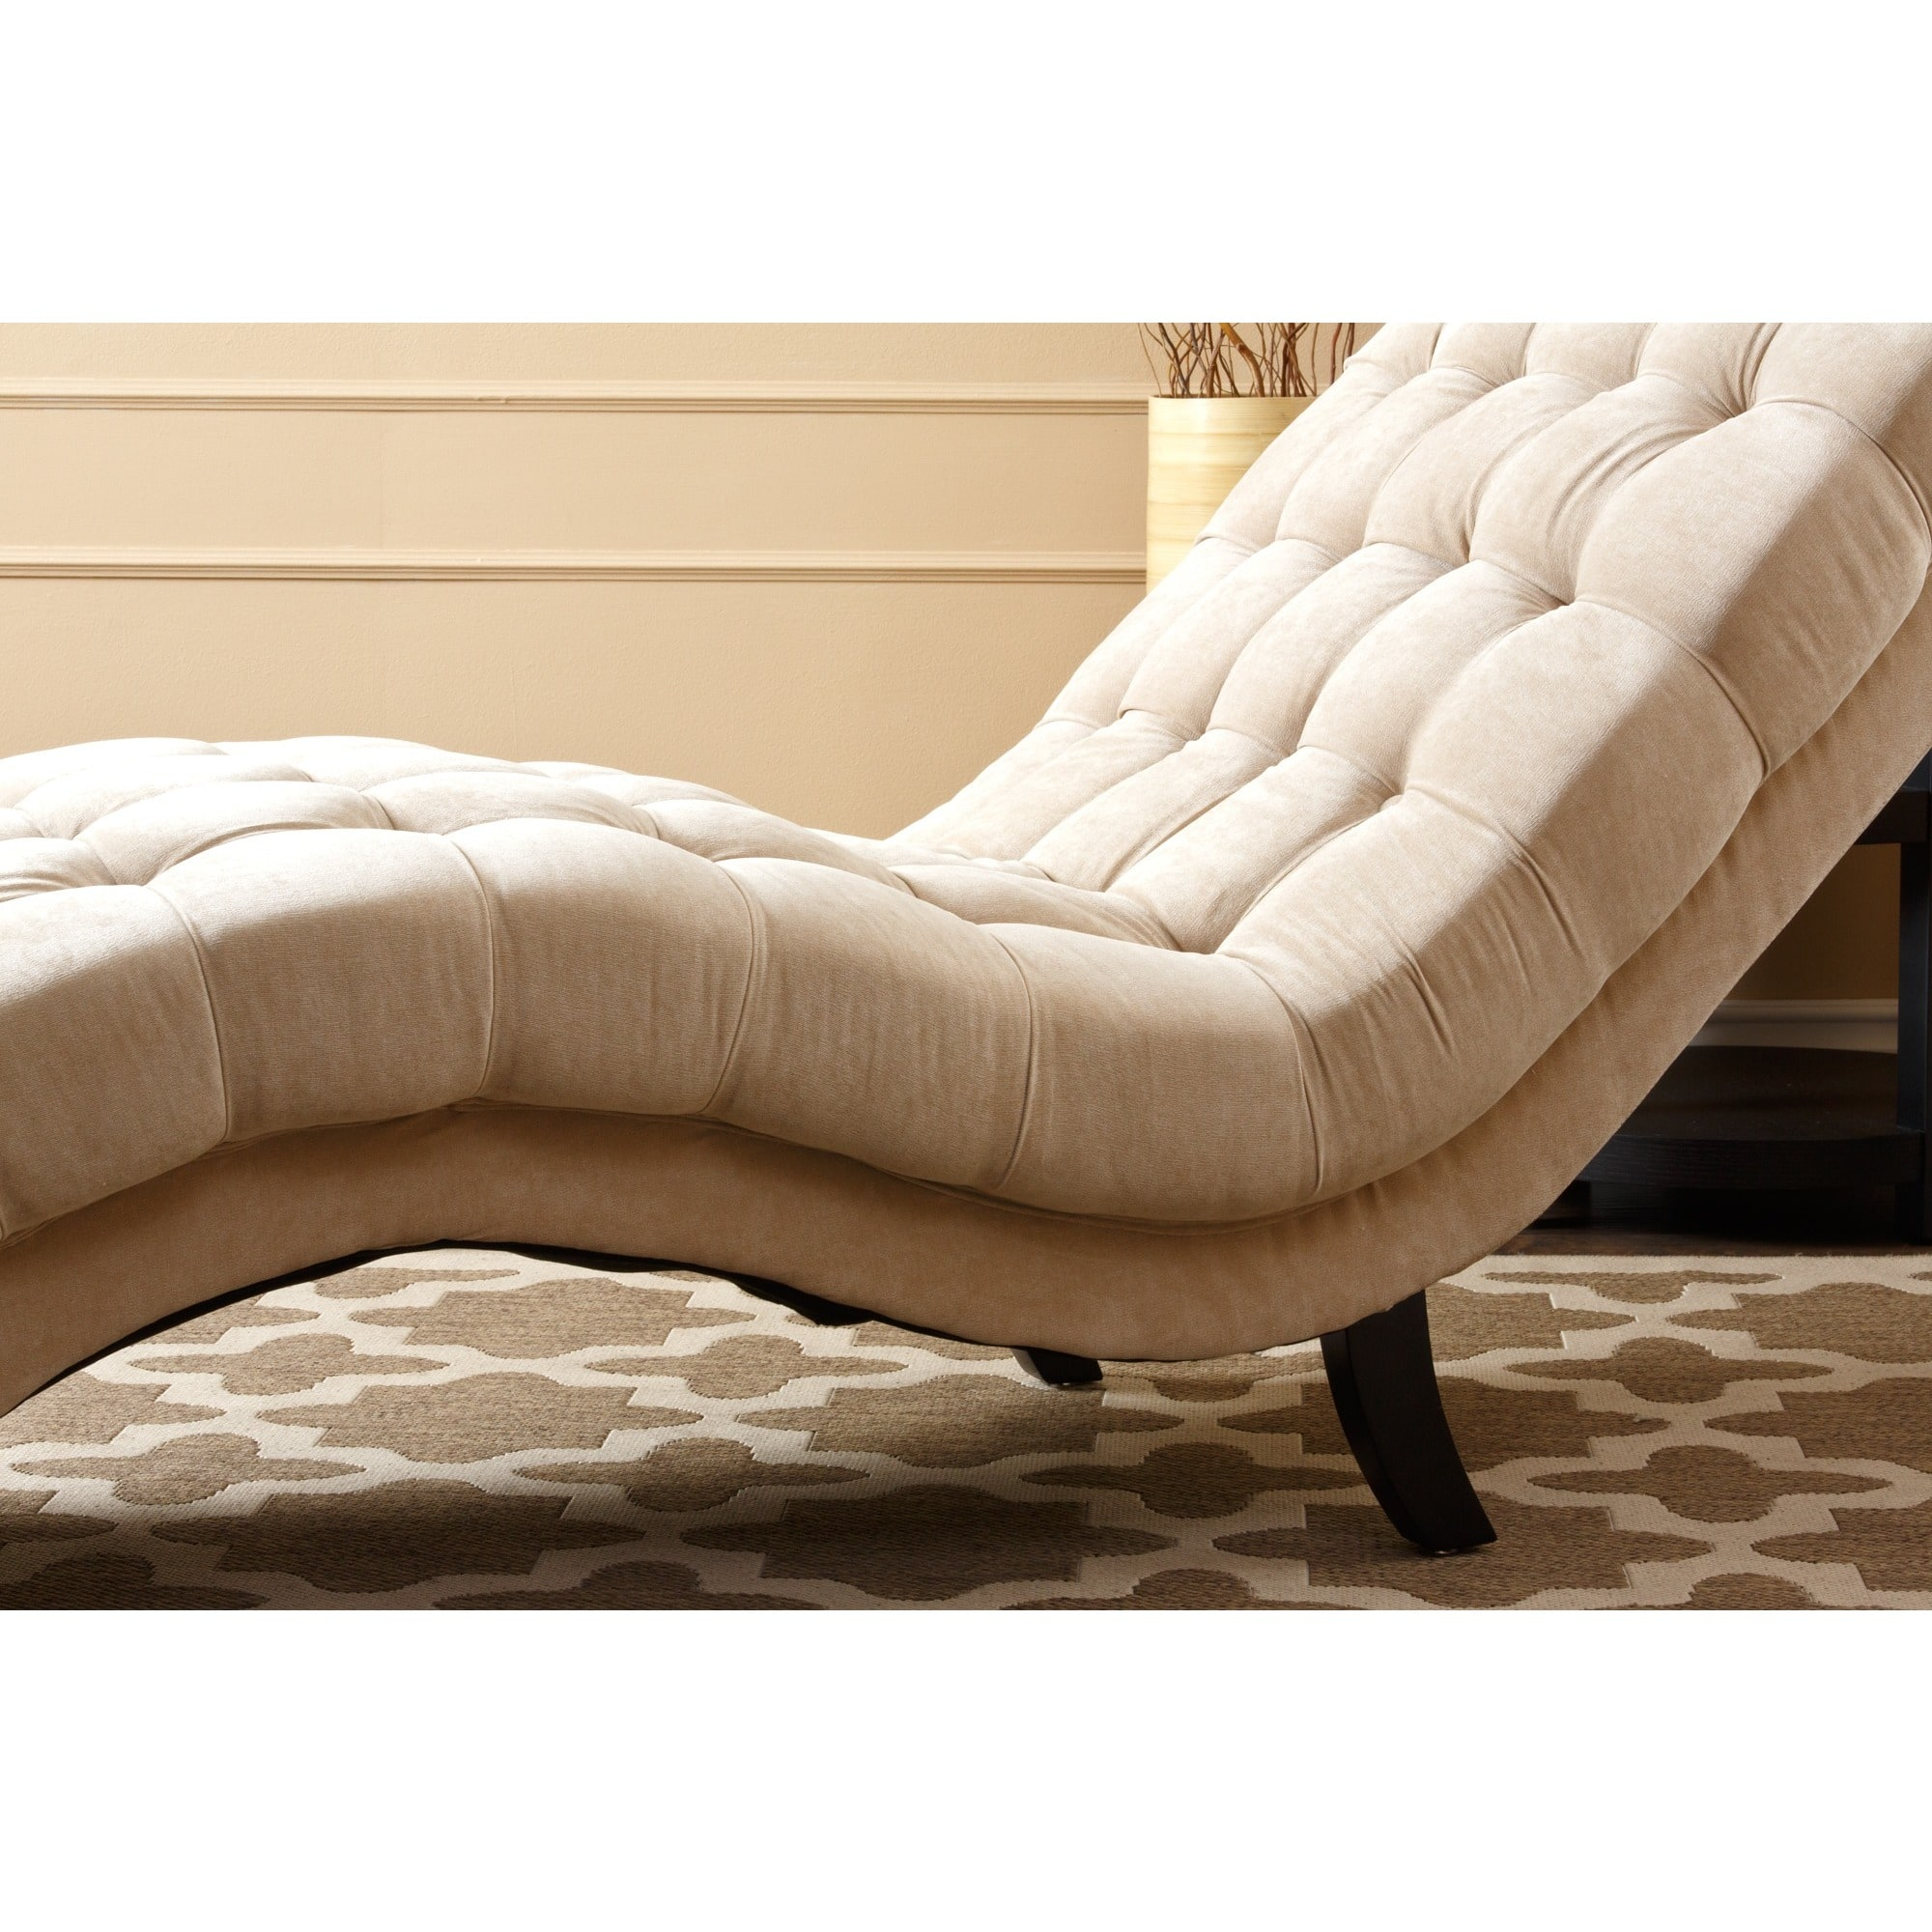 Living room chairs for less for Abbyson living soho cream fabric chaise